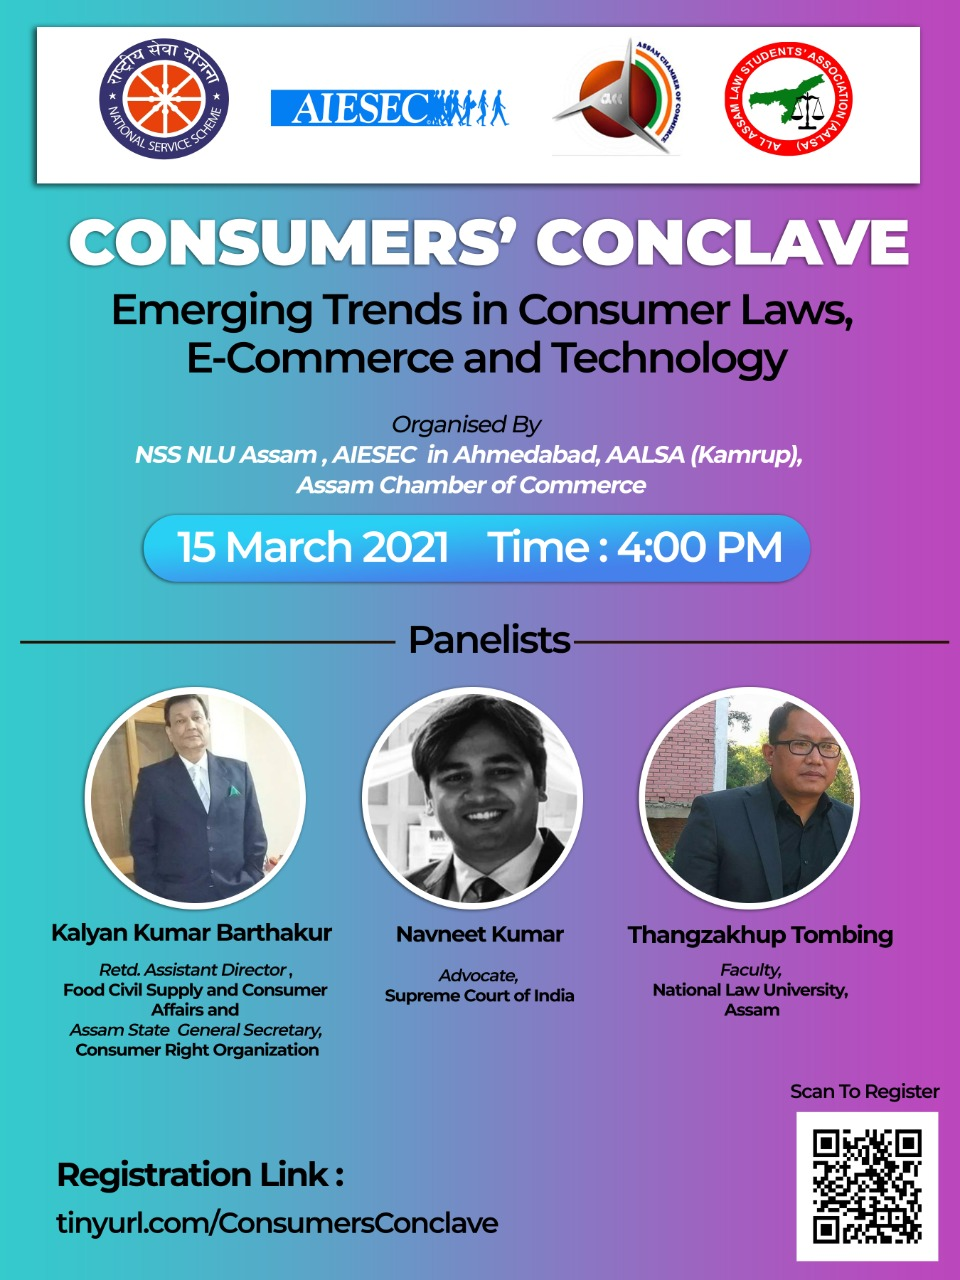 Consumers' Conclave by NSS NLU Assam on 15 March 2021: Register Now